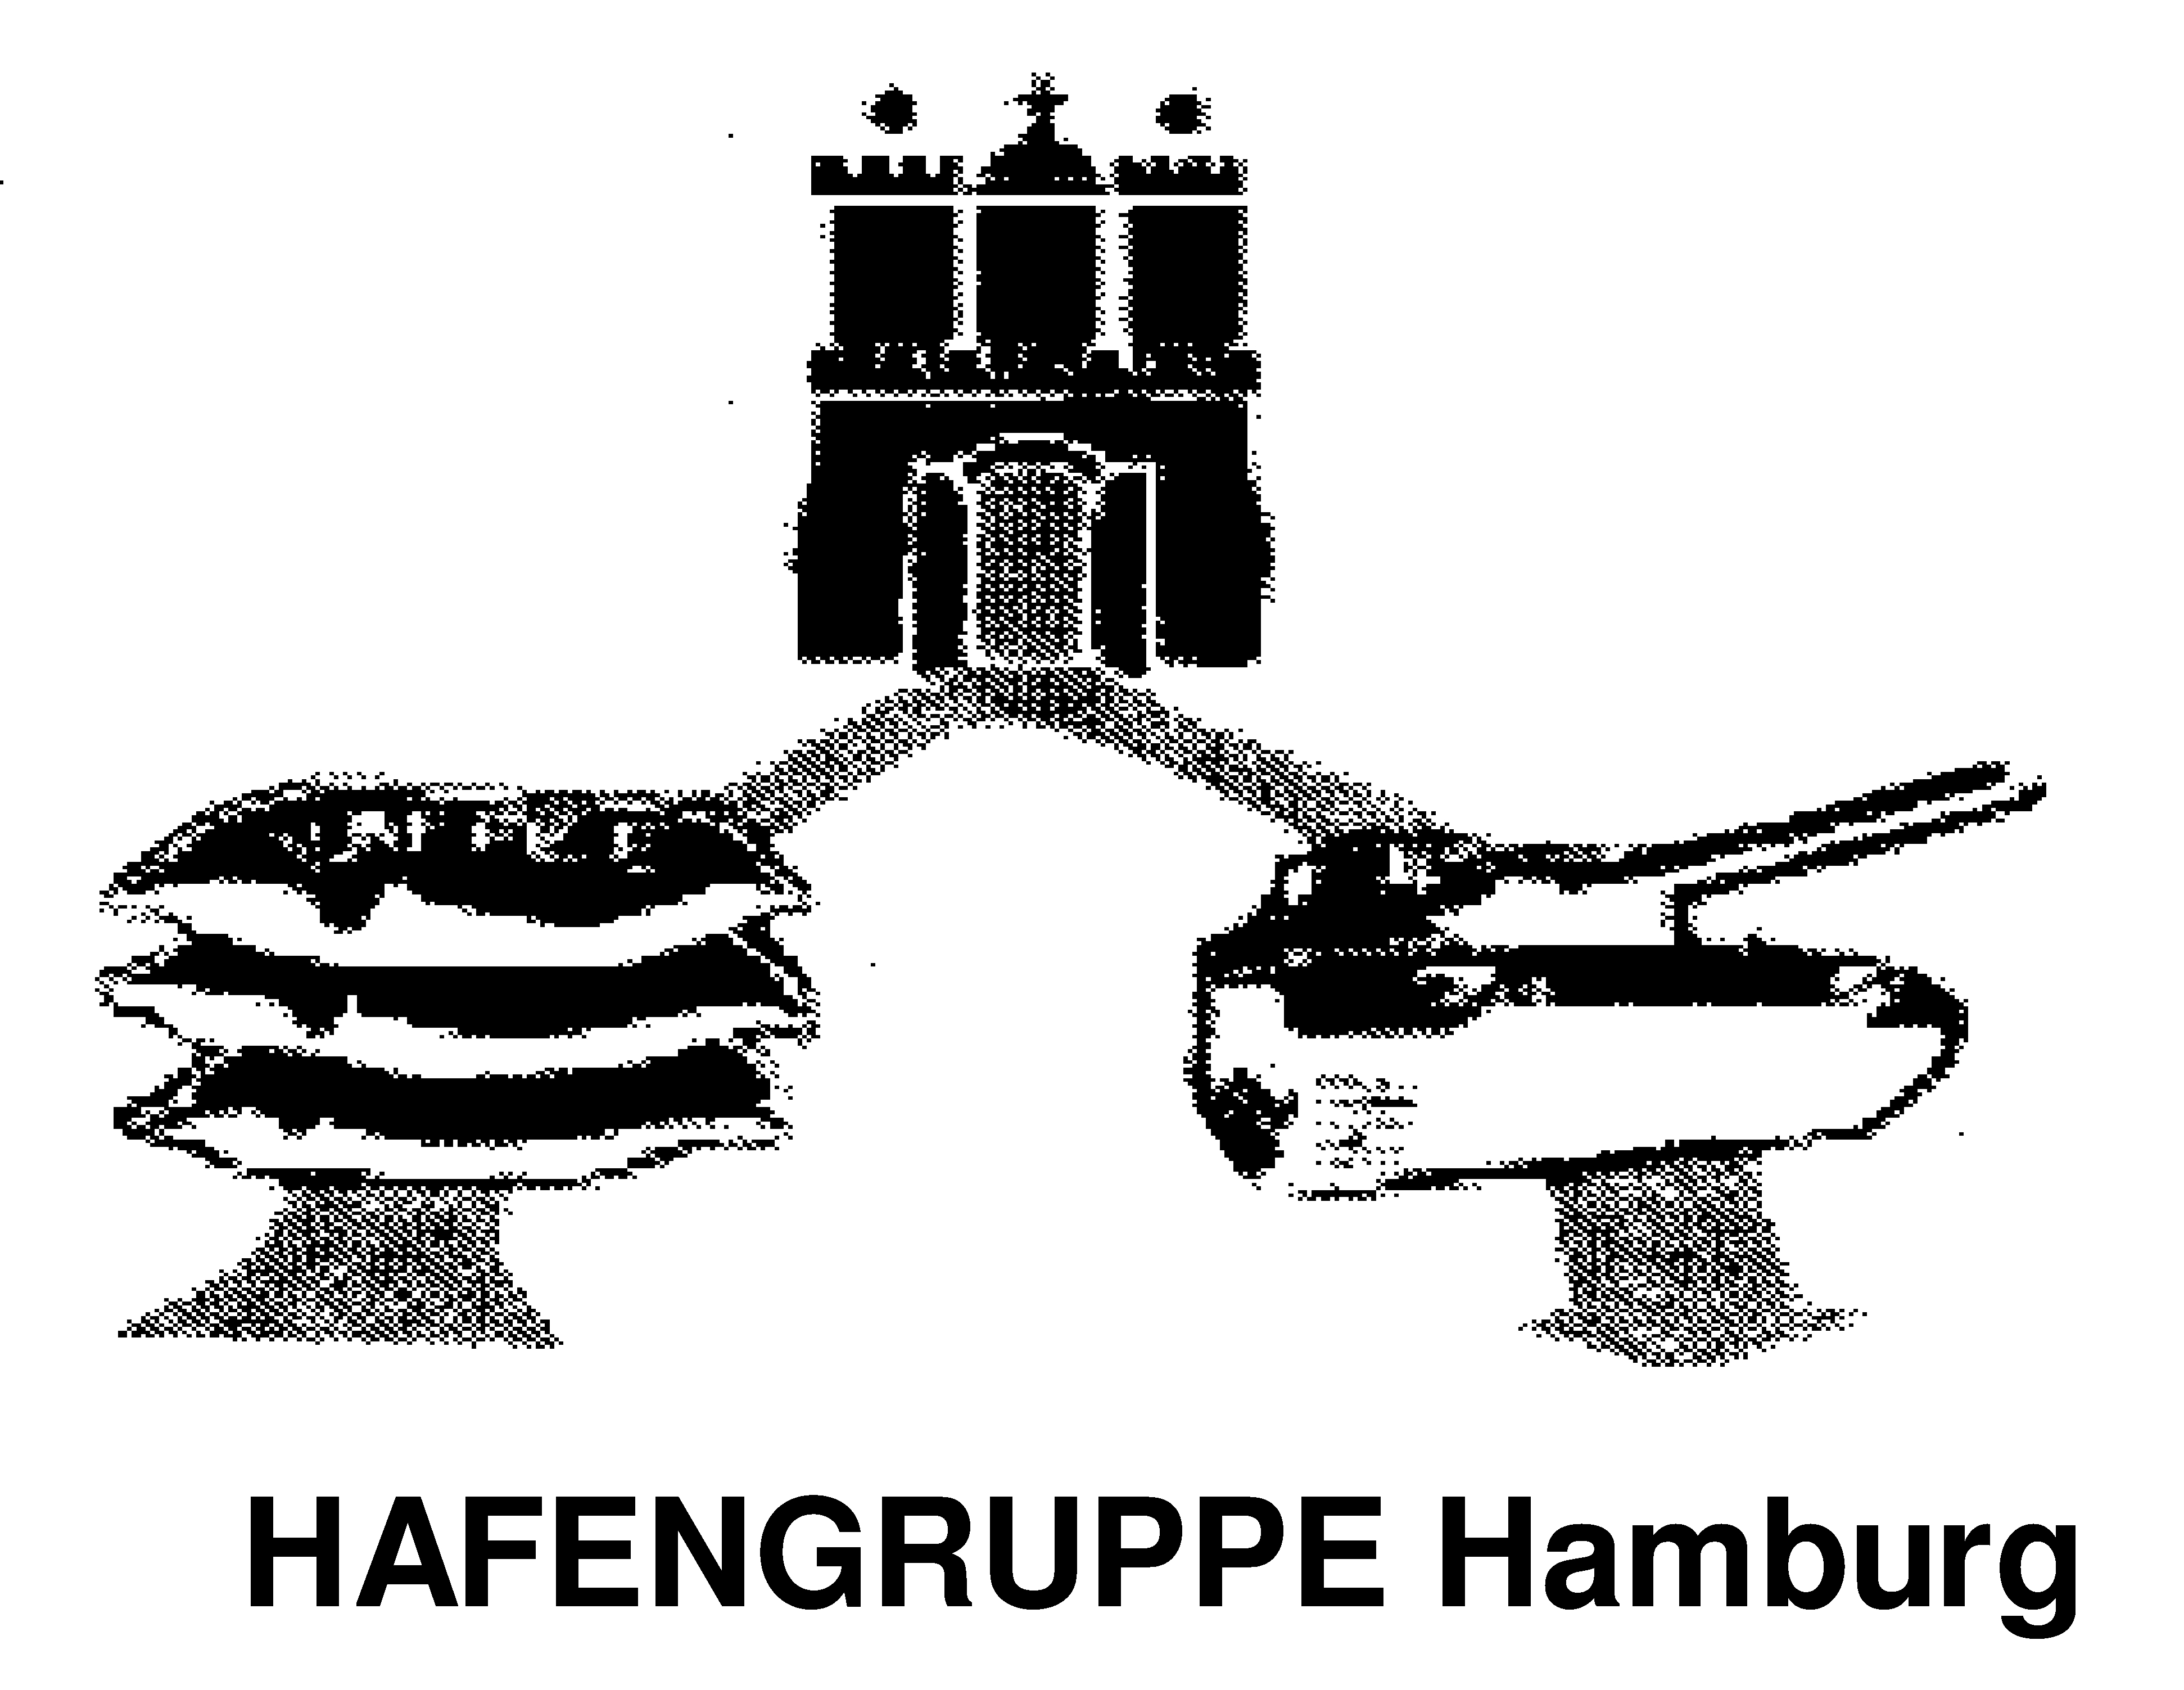 Hafengruppe